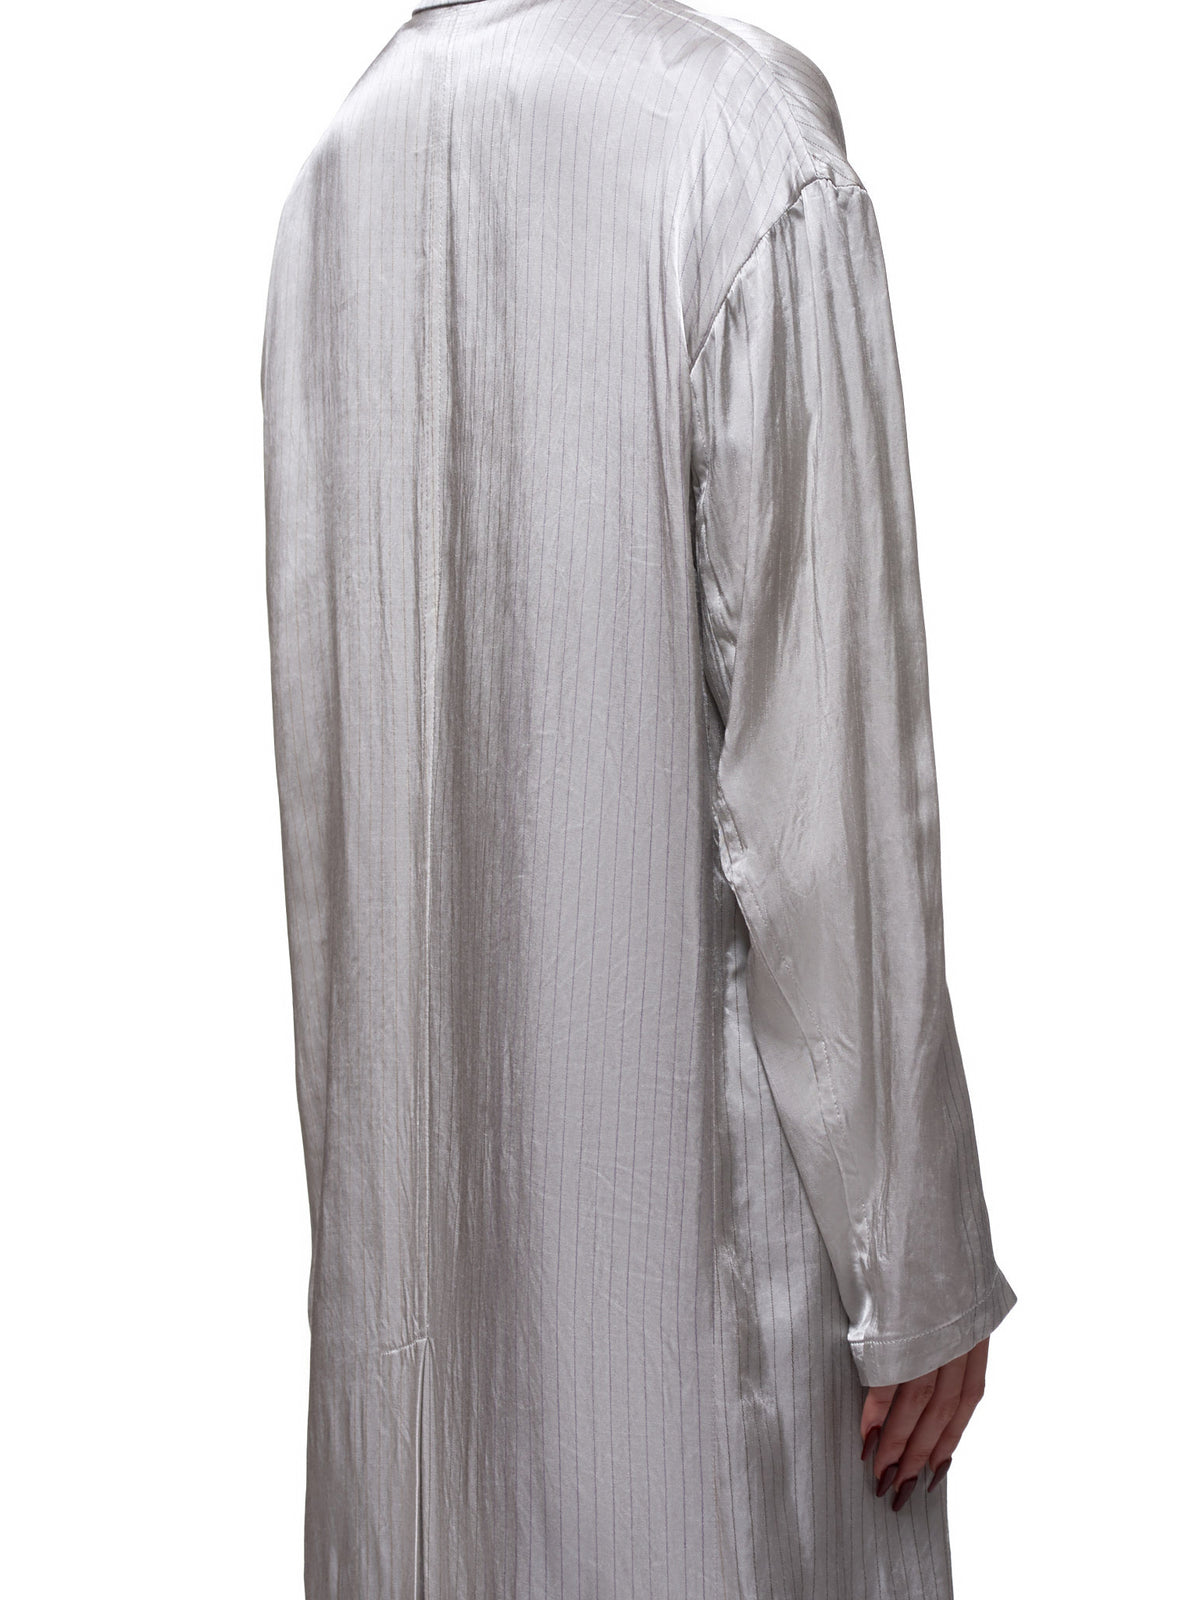 Luminous Pinstripe Duster (YN-J10-202-LIGHT-GREY)